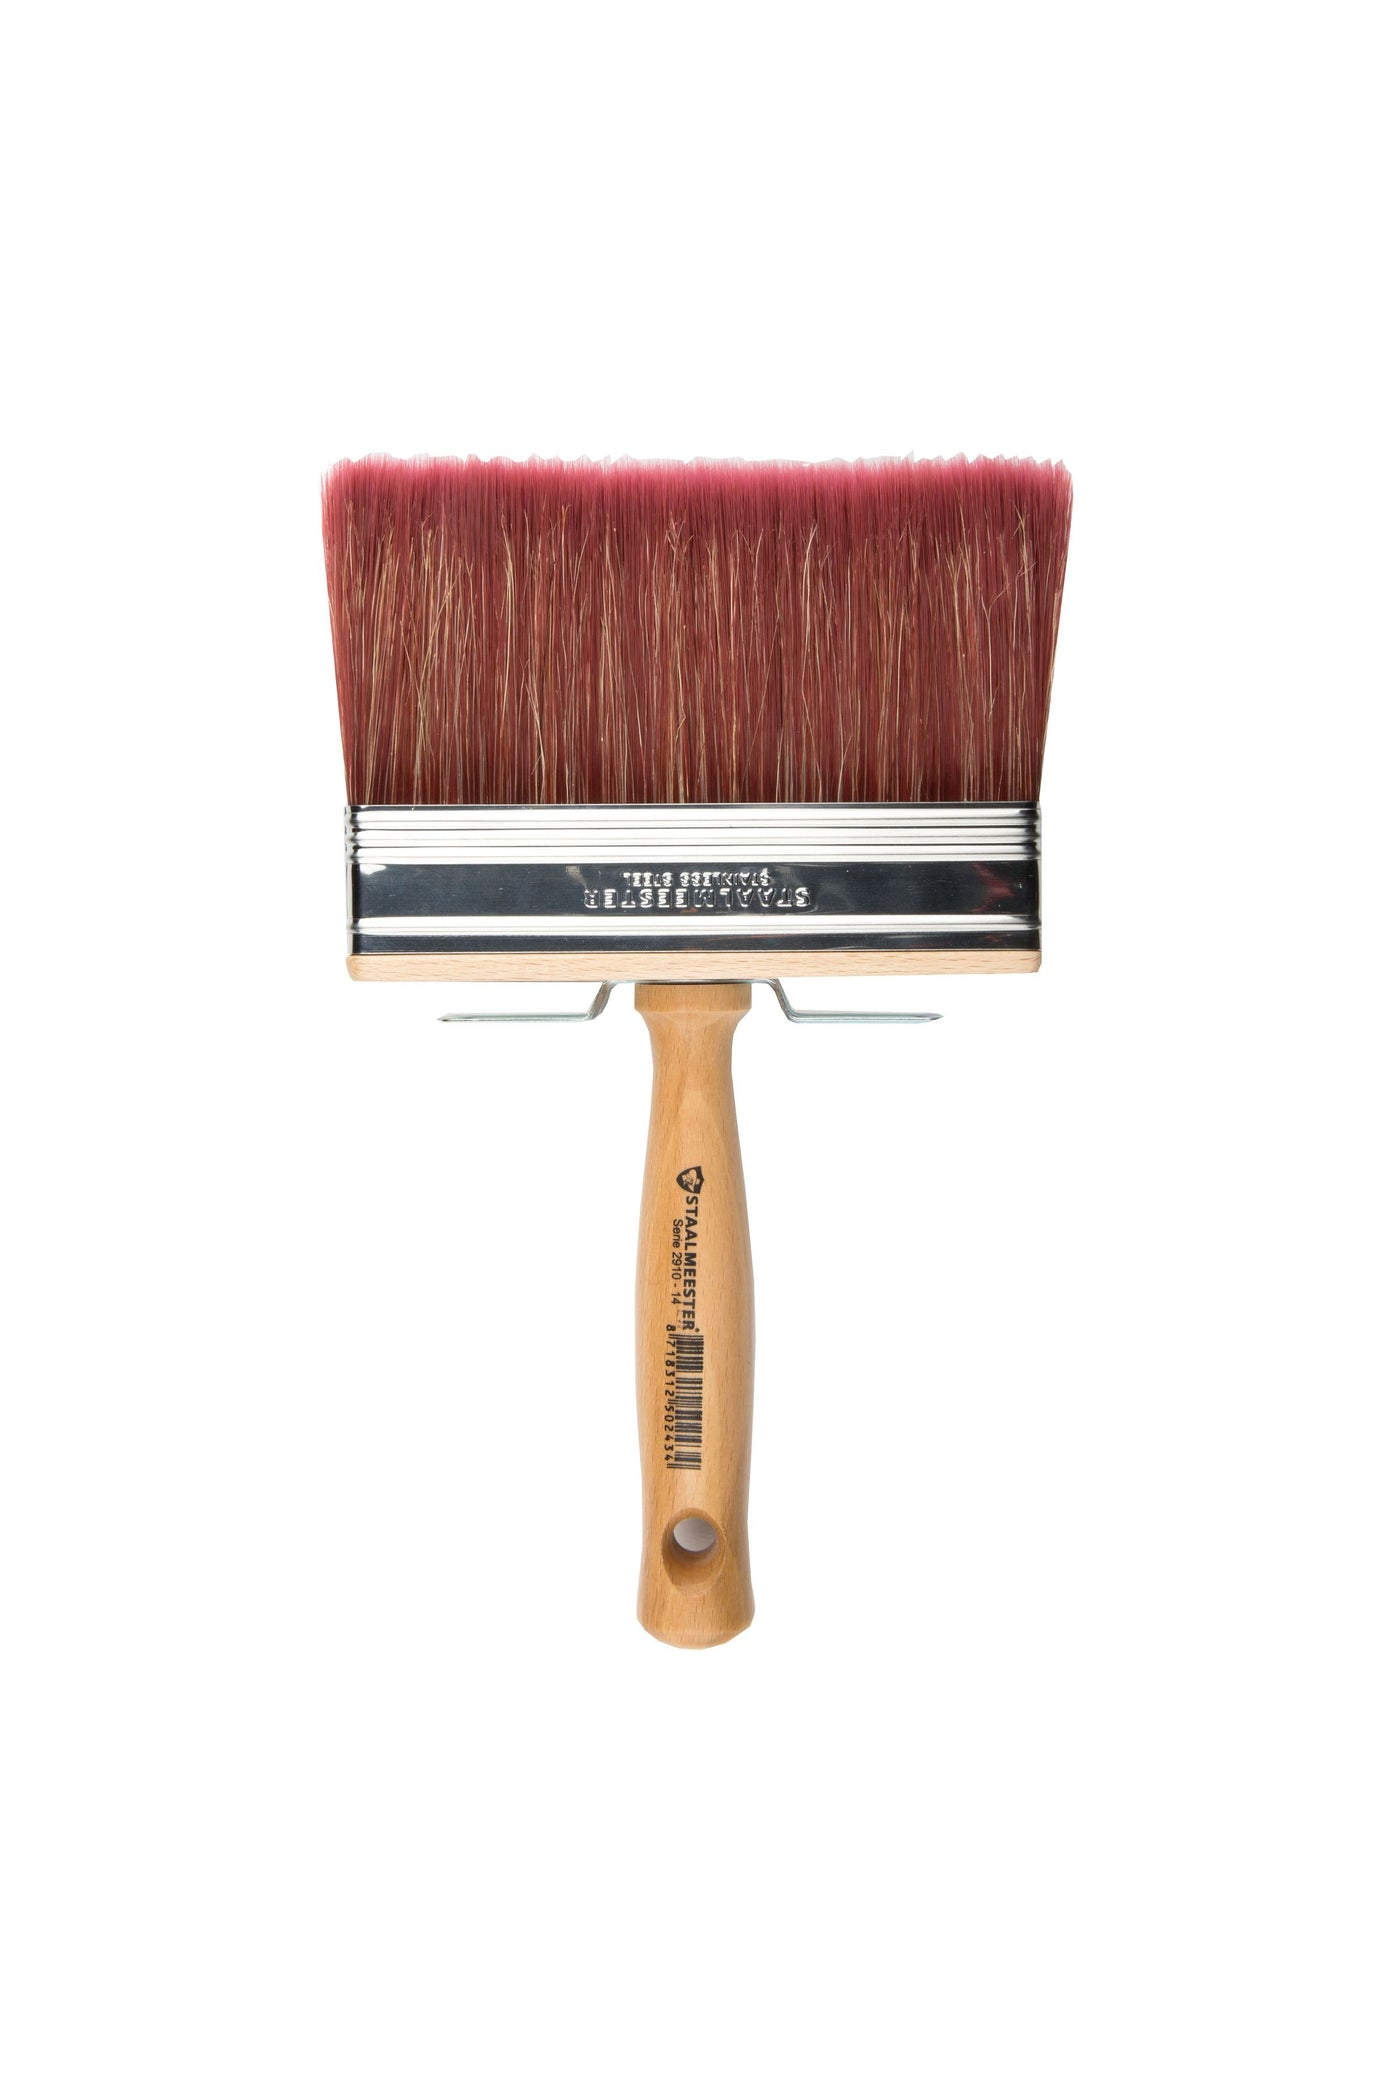 Staalmeester 4-inch WALL Brush - Tynt Paint Studio